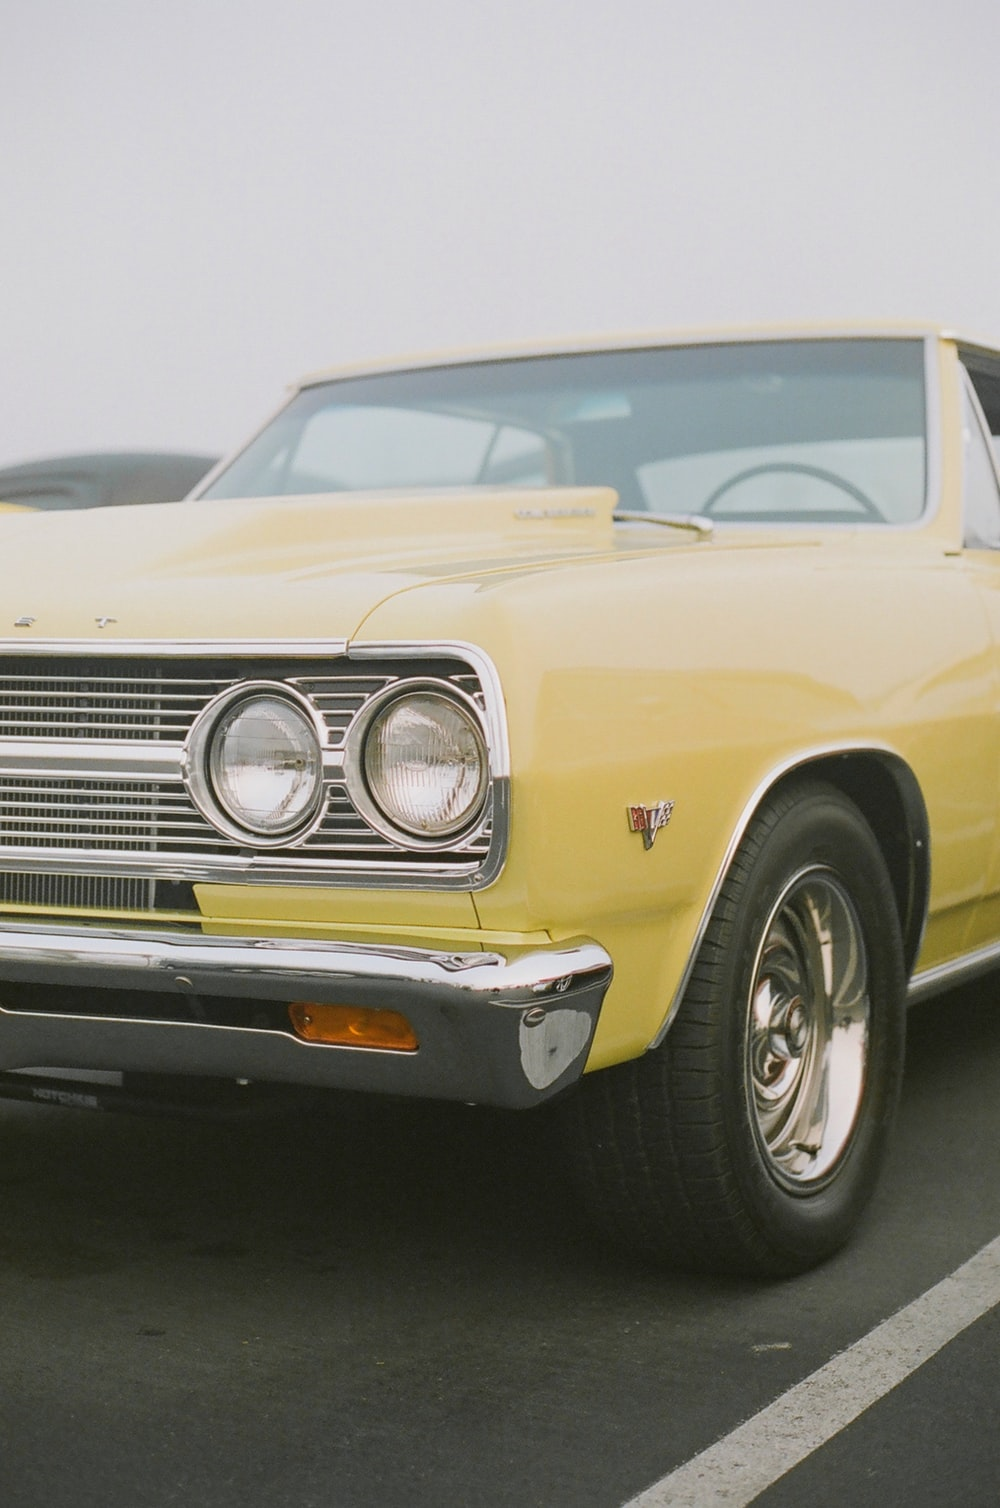 yellow classic car in close up photography